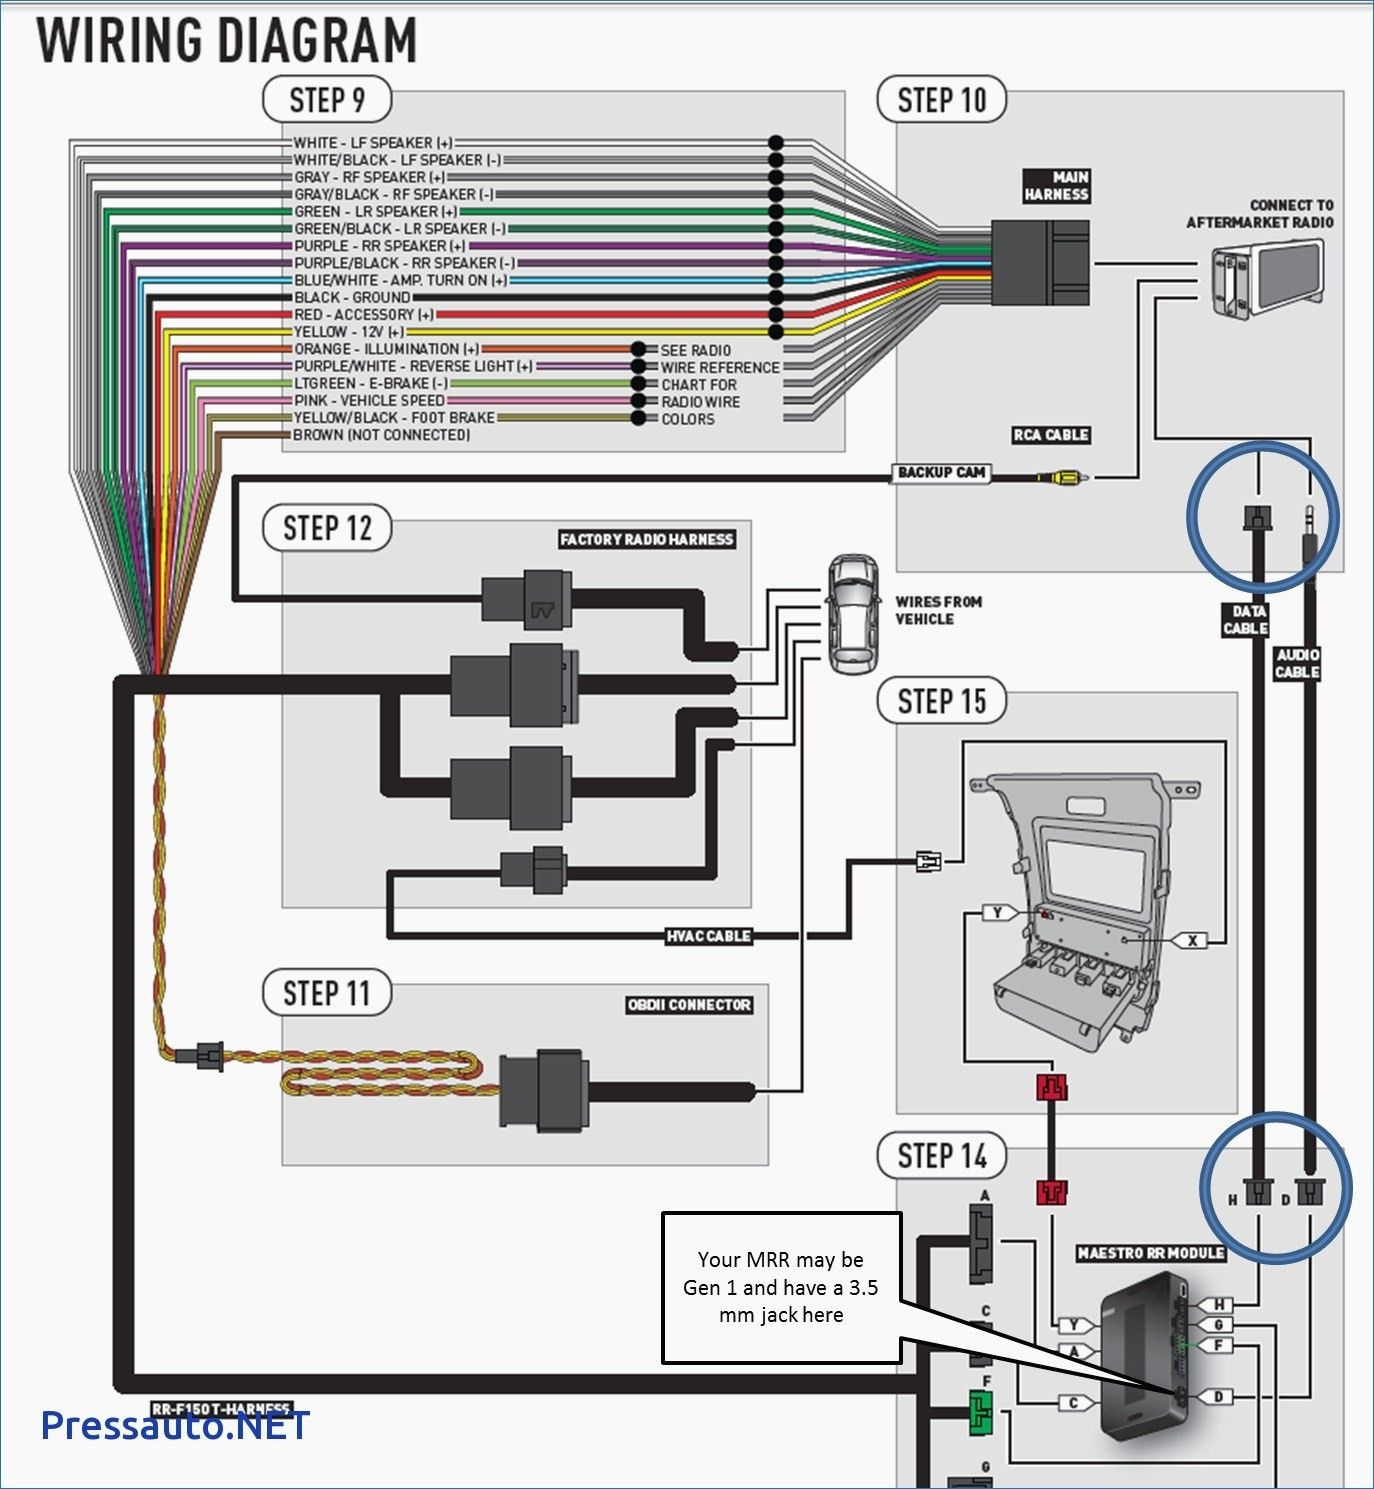 Inspirational Wiring Diagram Pioneer Diagrams Digramssample Diagramimages Check More At Https Nostoc Co Wiring Diagram Pioneer With Images Diagram Avh Wire